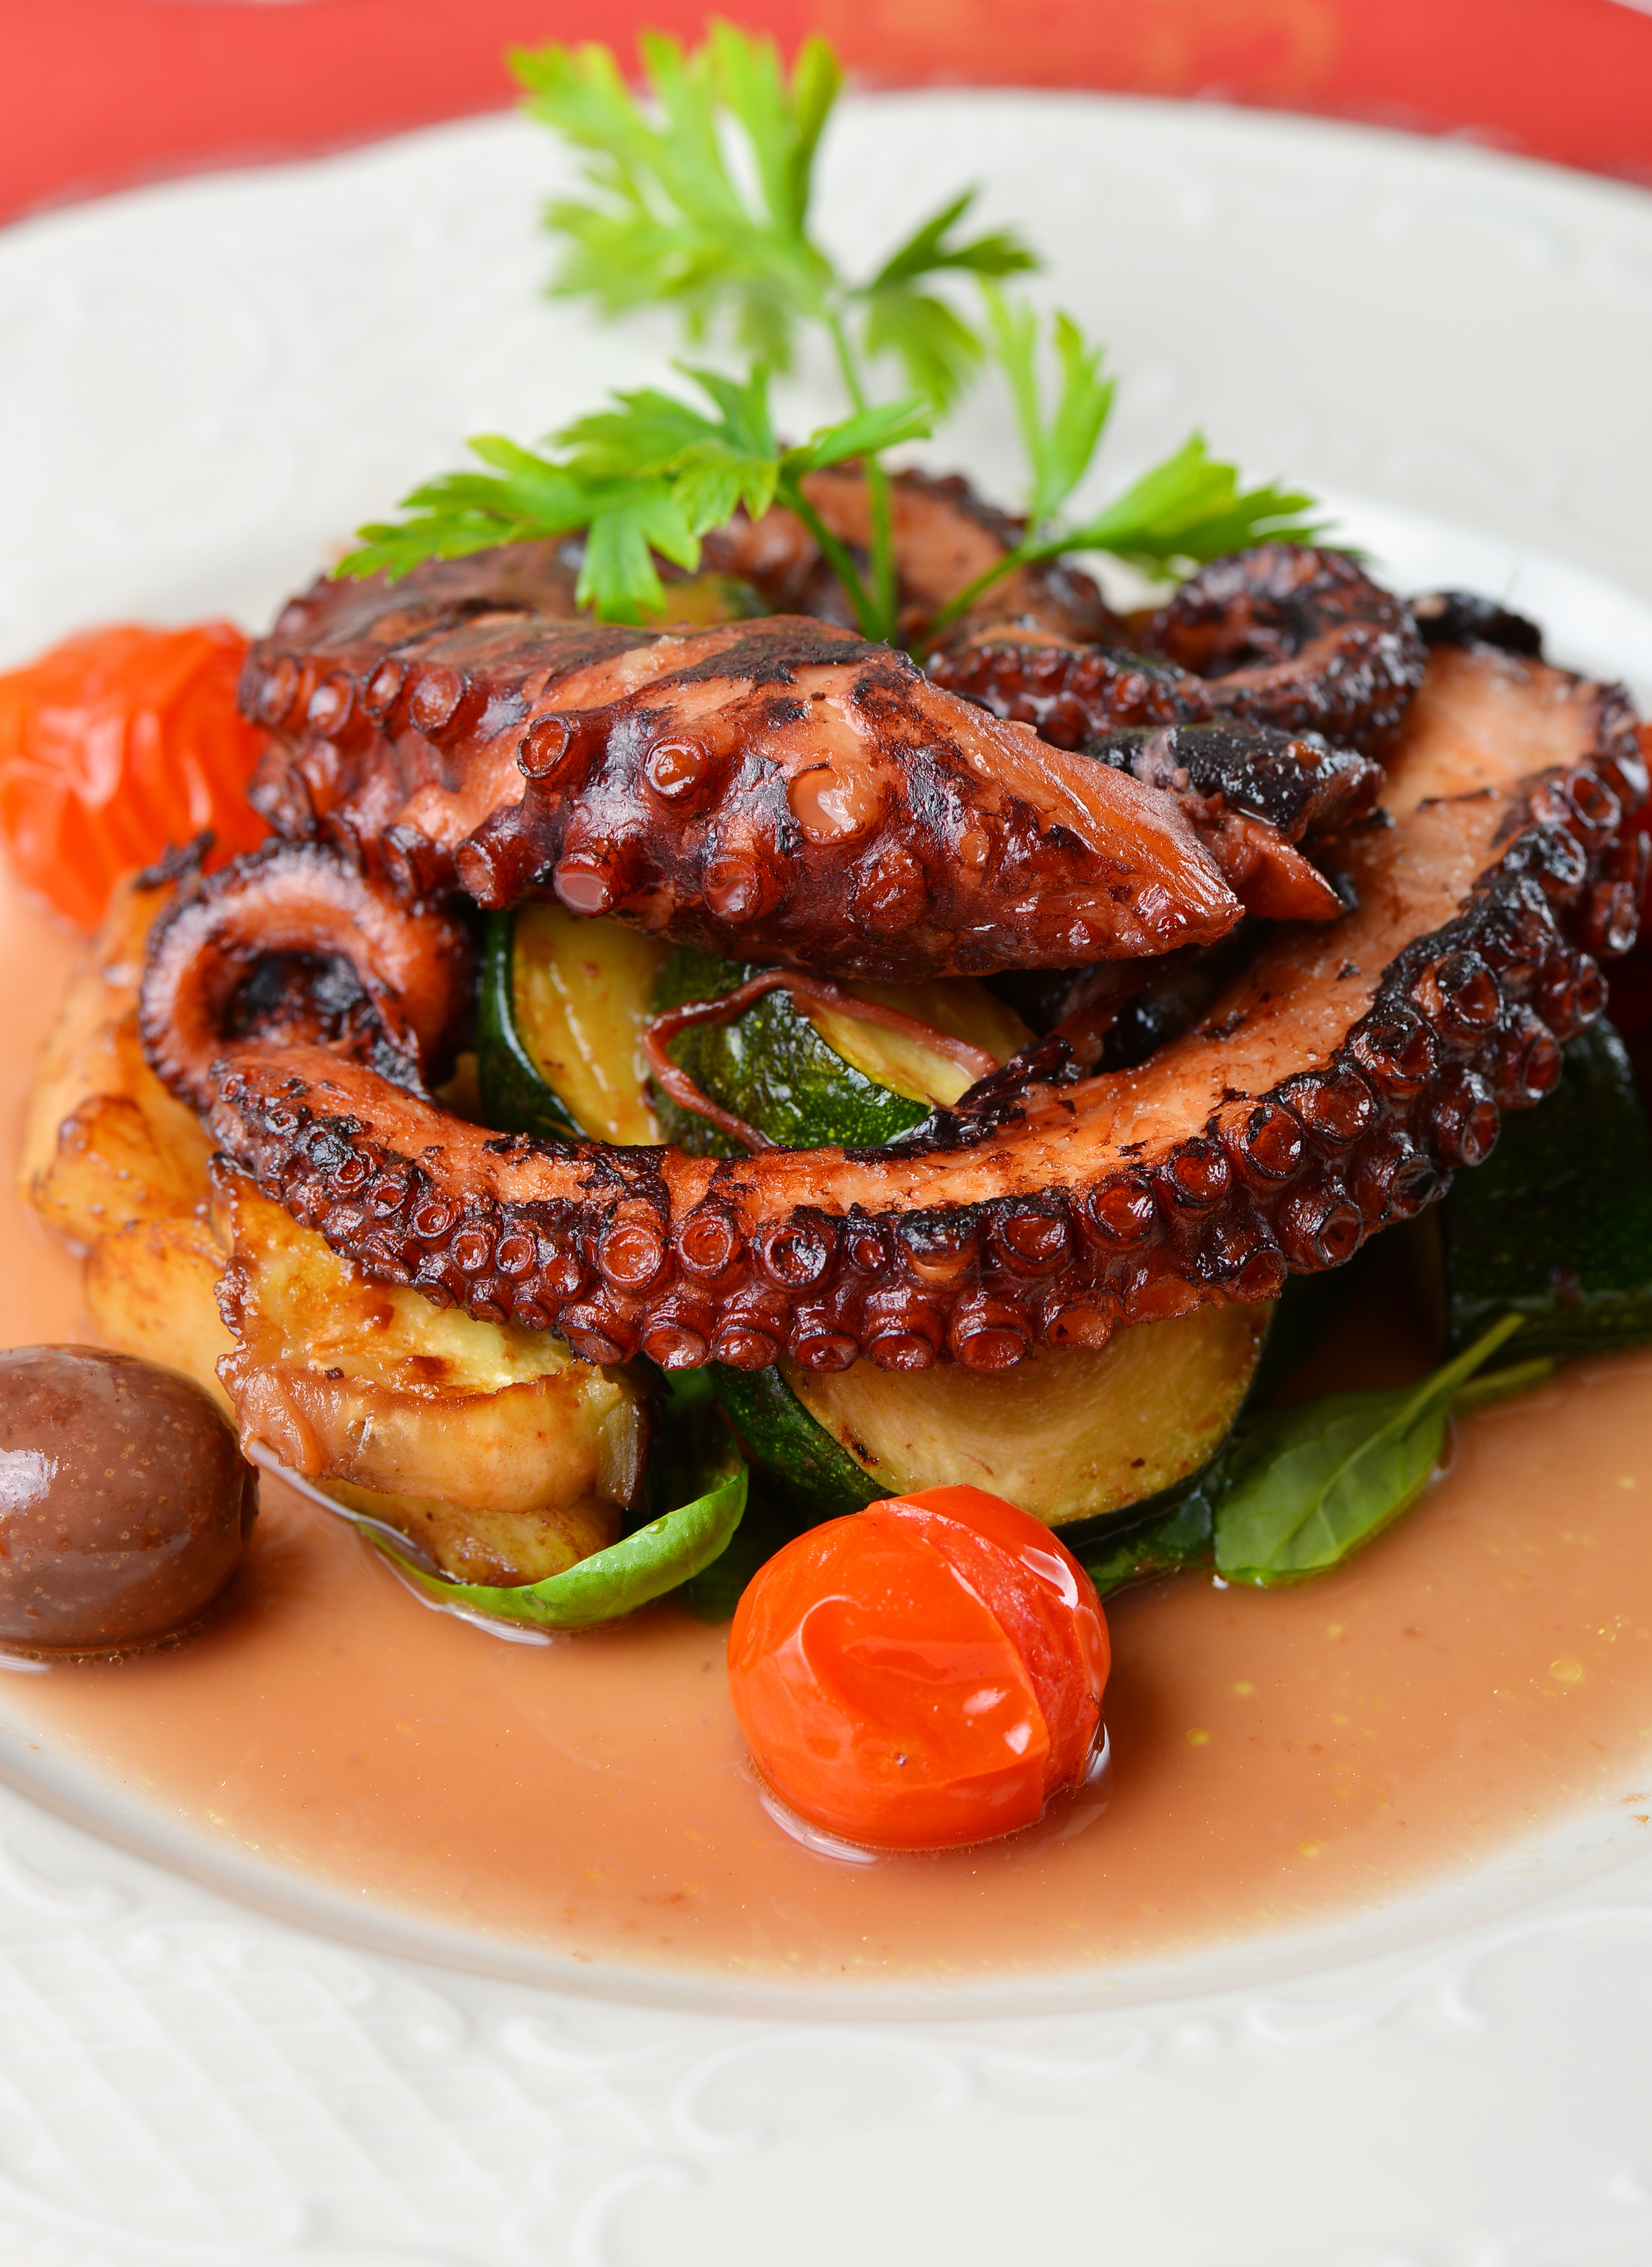 Fresh,Grilled,Octopus,With,Olives,,Potato,,Tomatoes,,Zucchini,,Vegetable,And